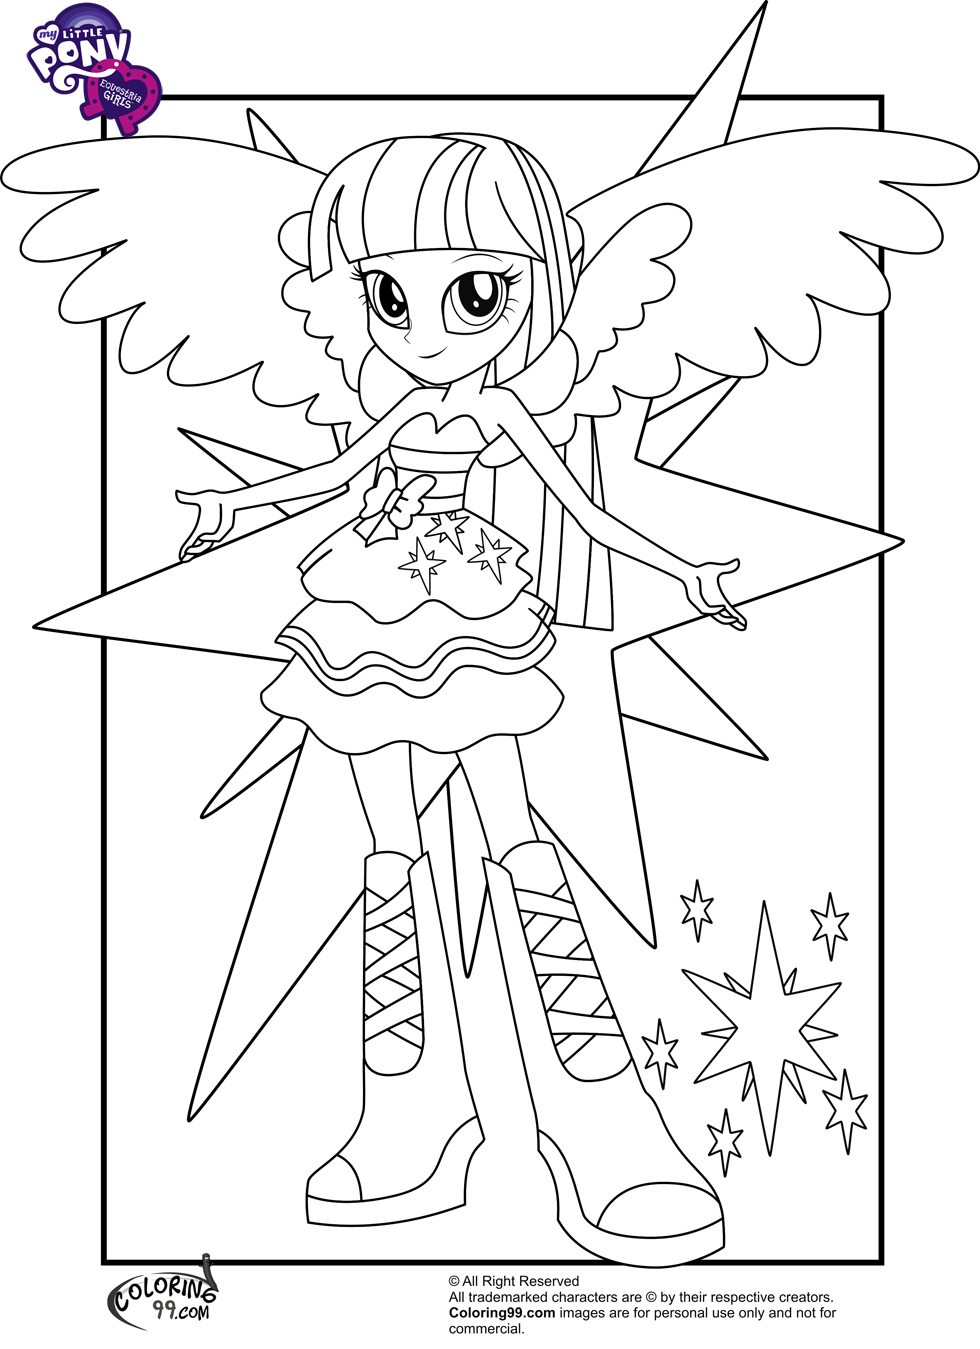 My Little Pony Equestria Girls Rainbow Rocks Rainbow Dash Coloring Pages